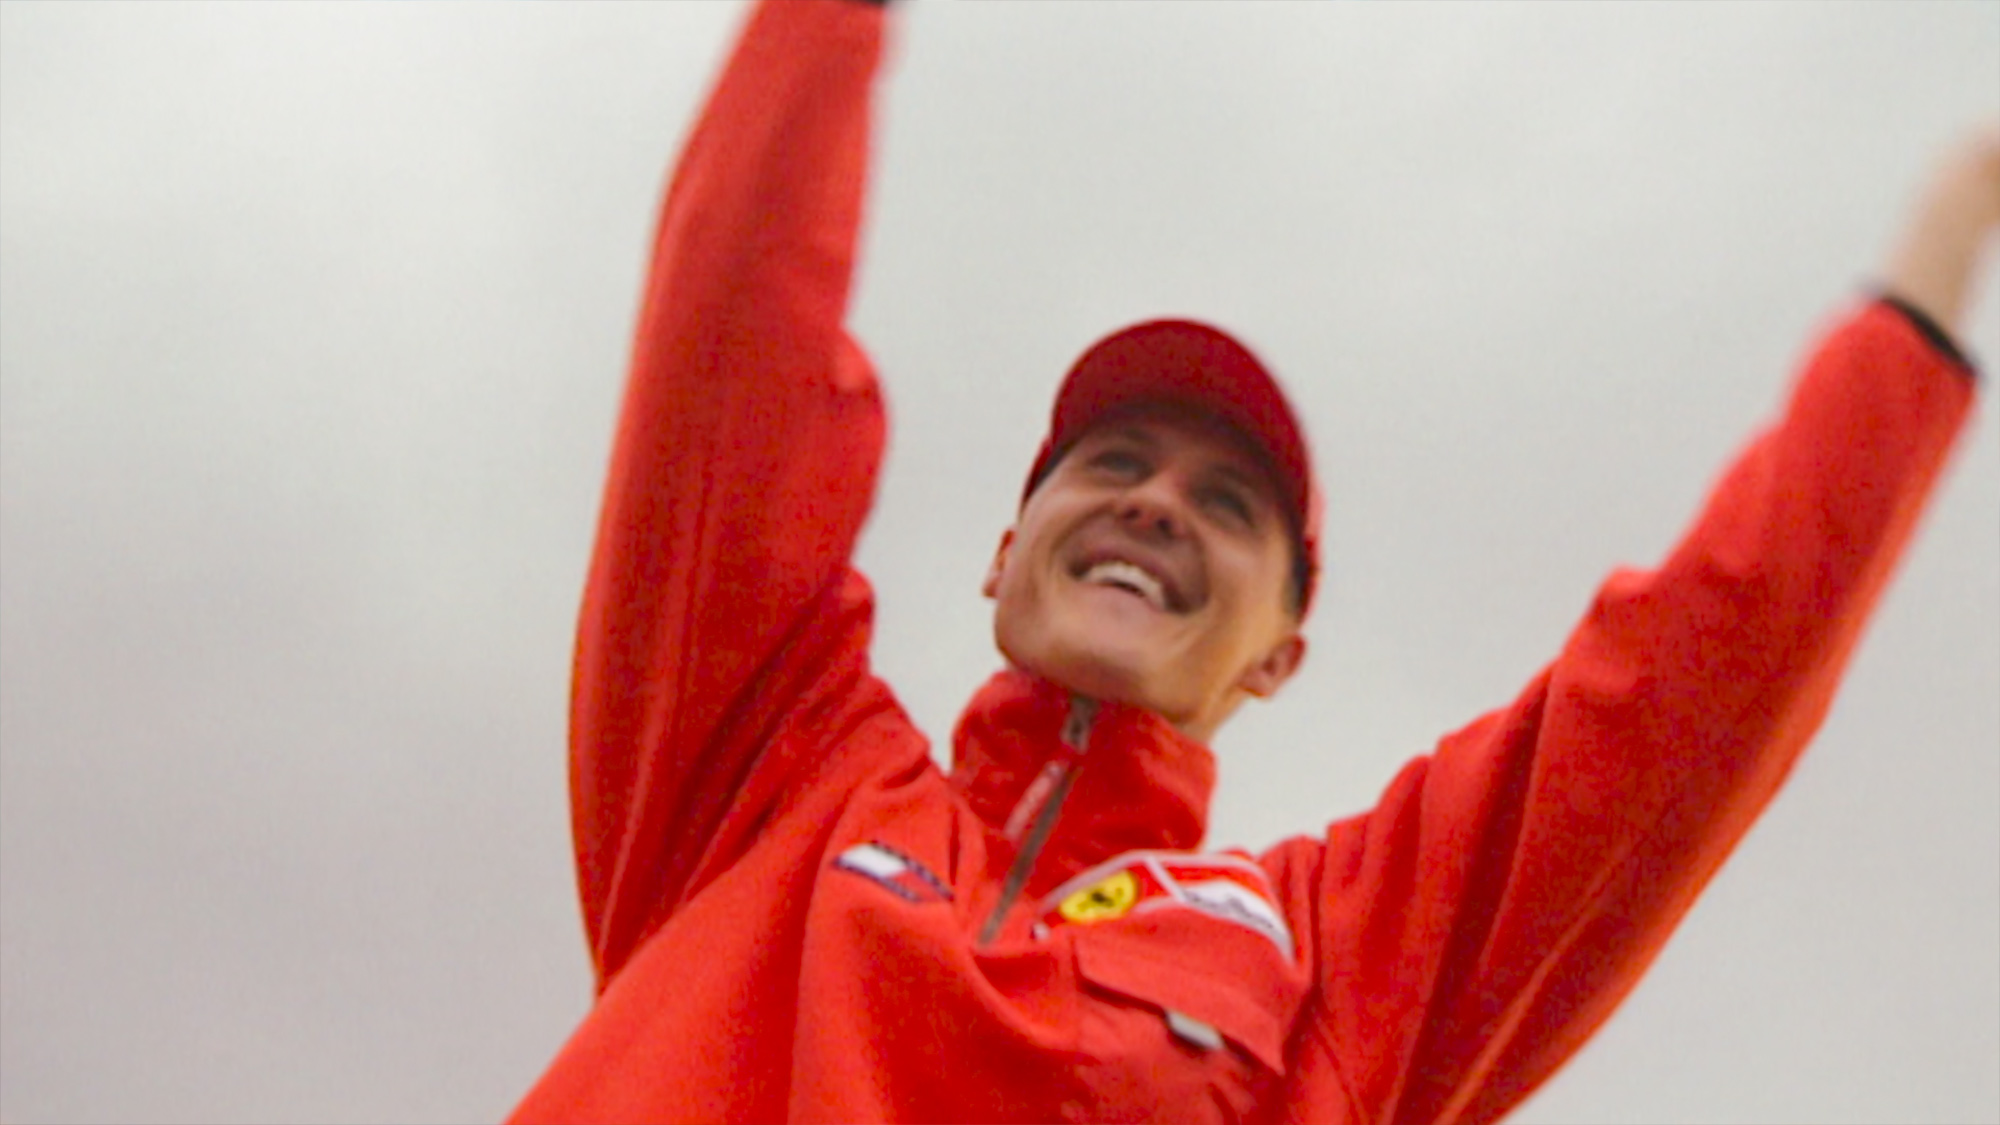 Michael Schumacher with hands in the air